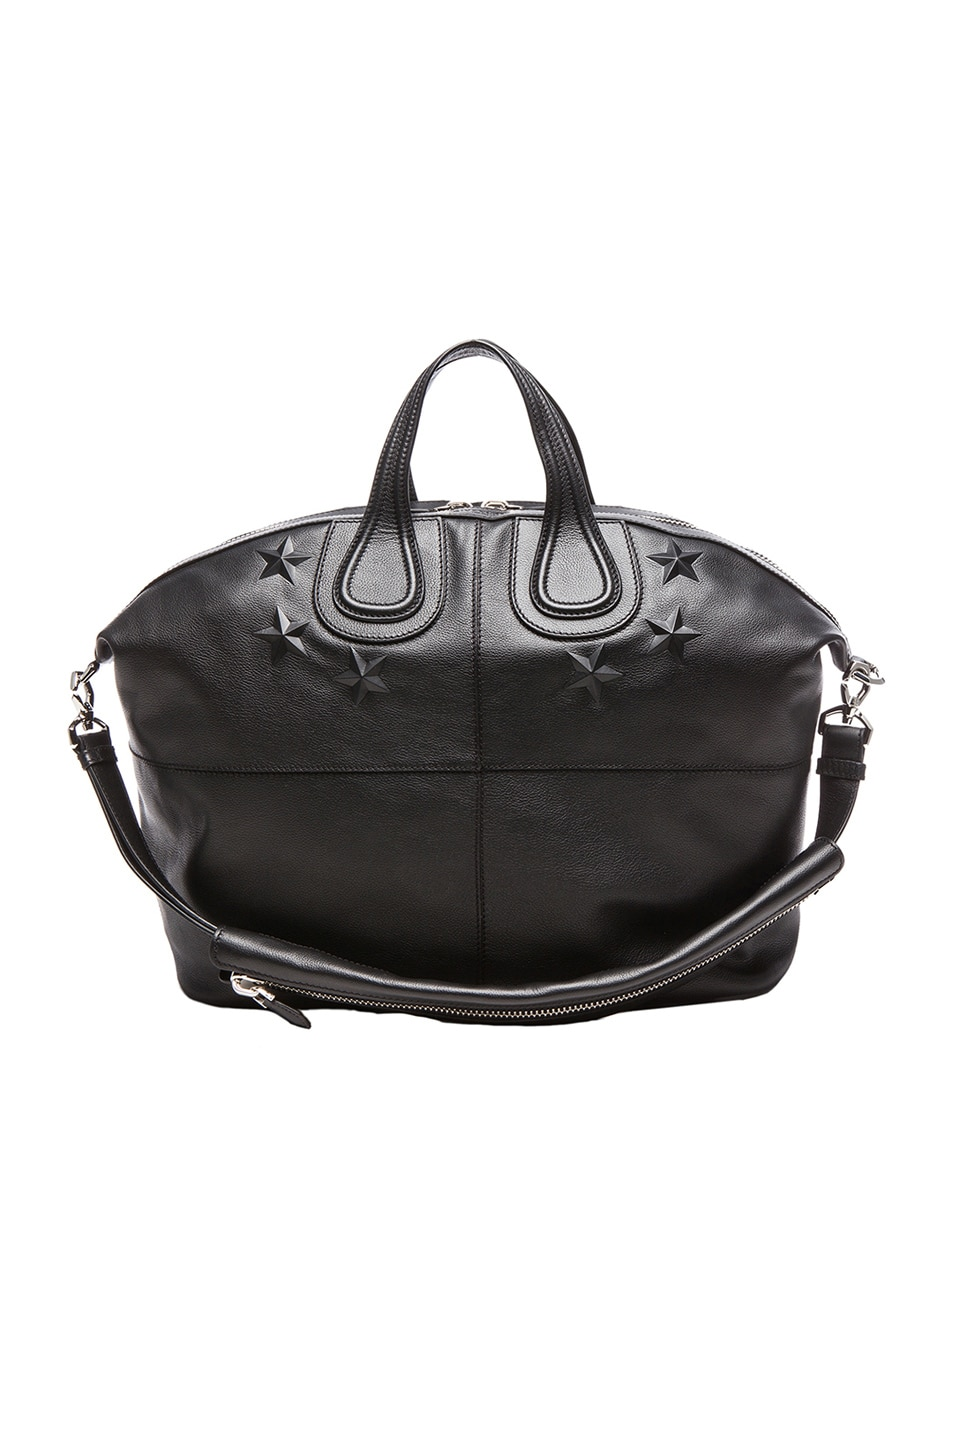 10b48a2d88c4 Image 1 of Givenchy Debossed Star Nightingale Bag in Black